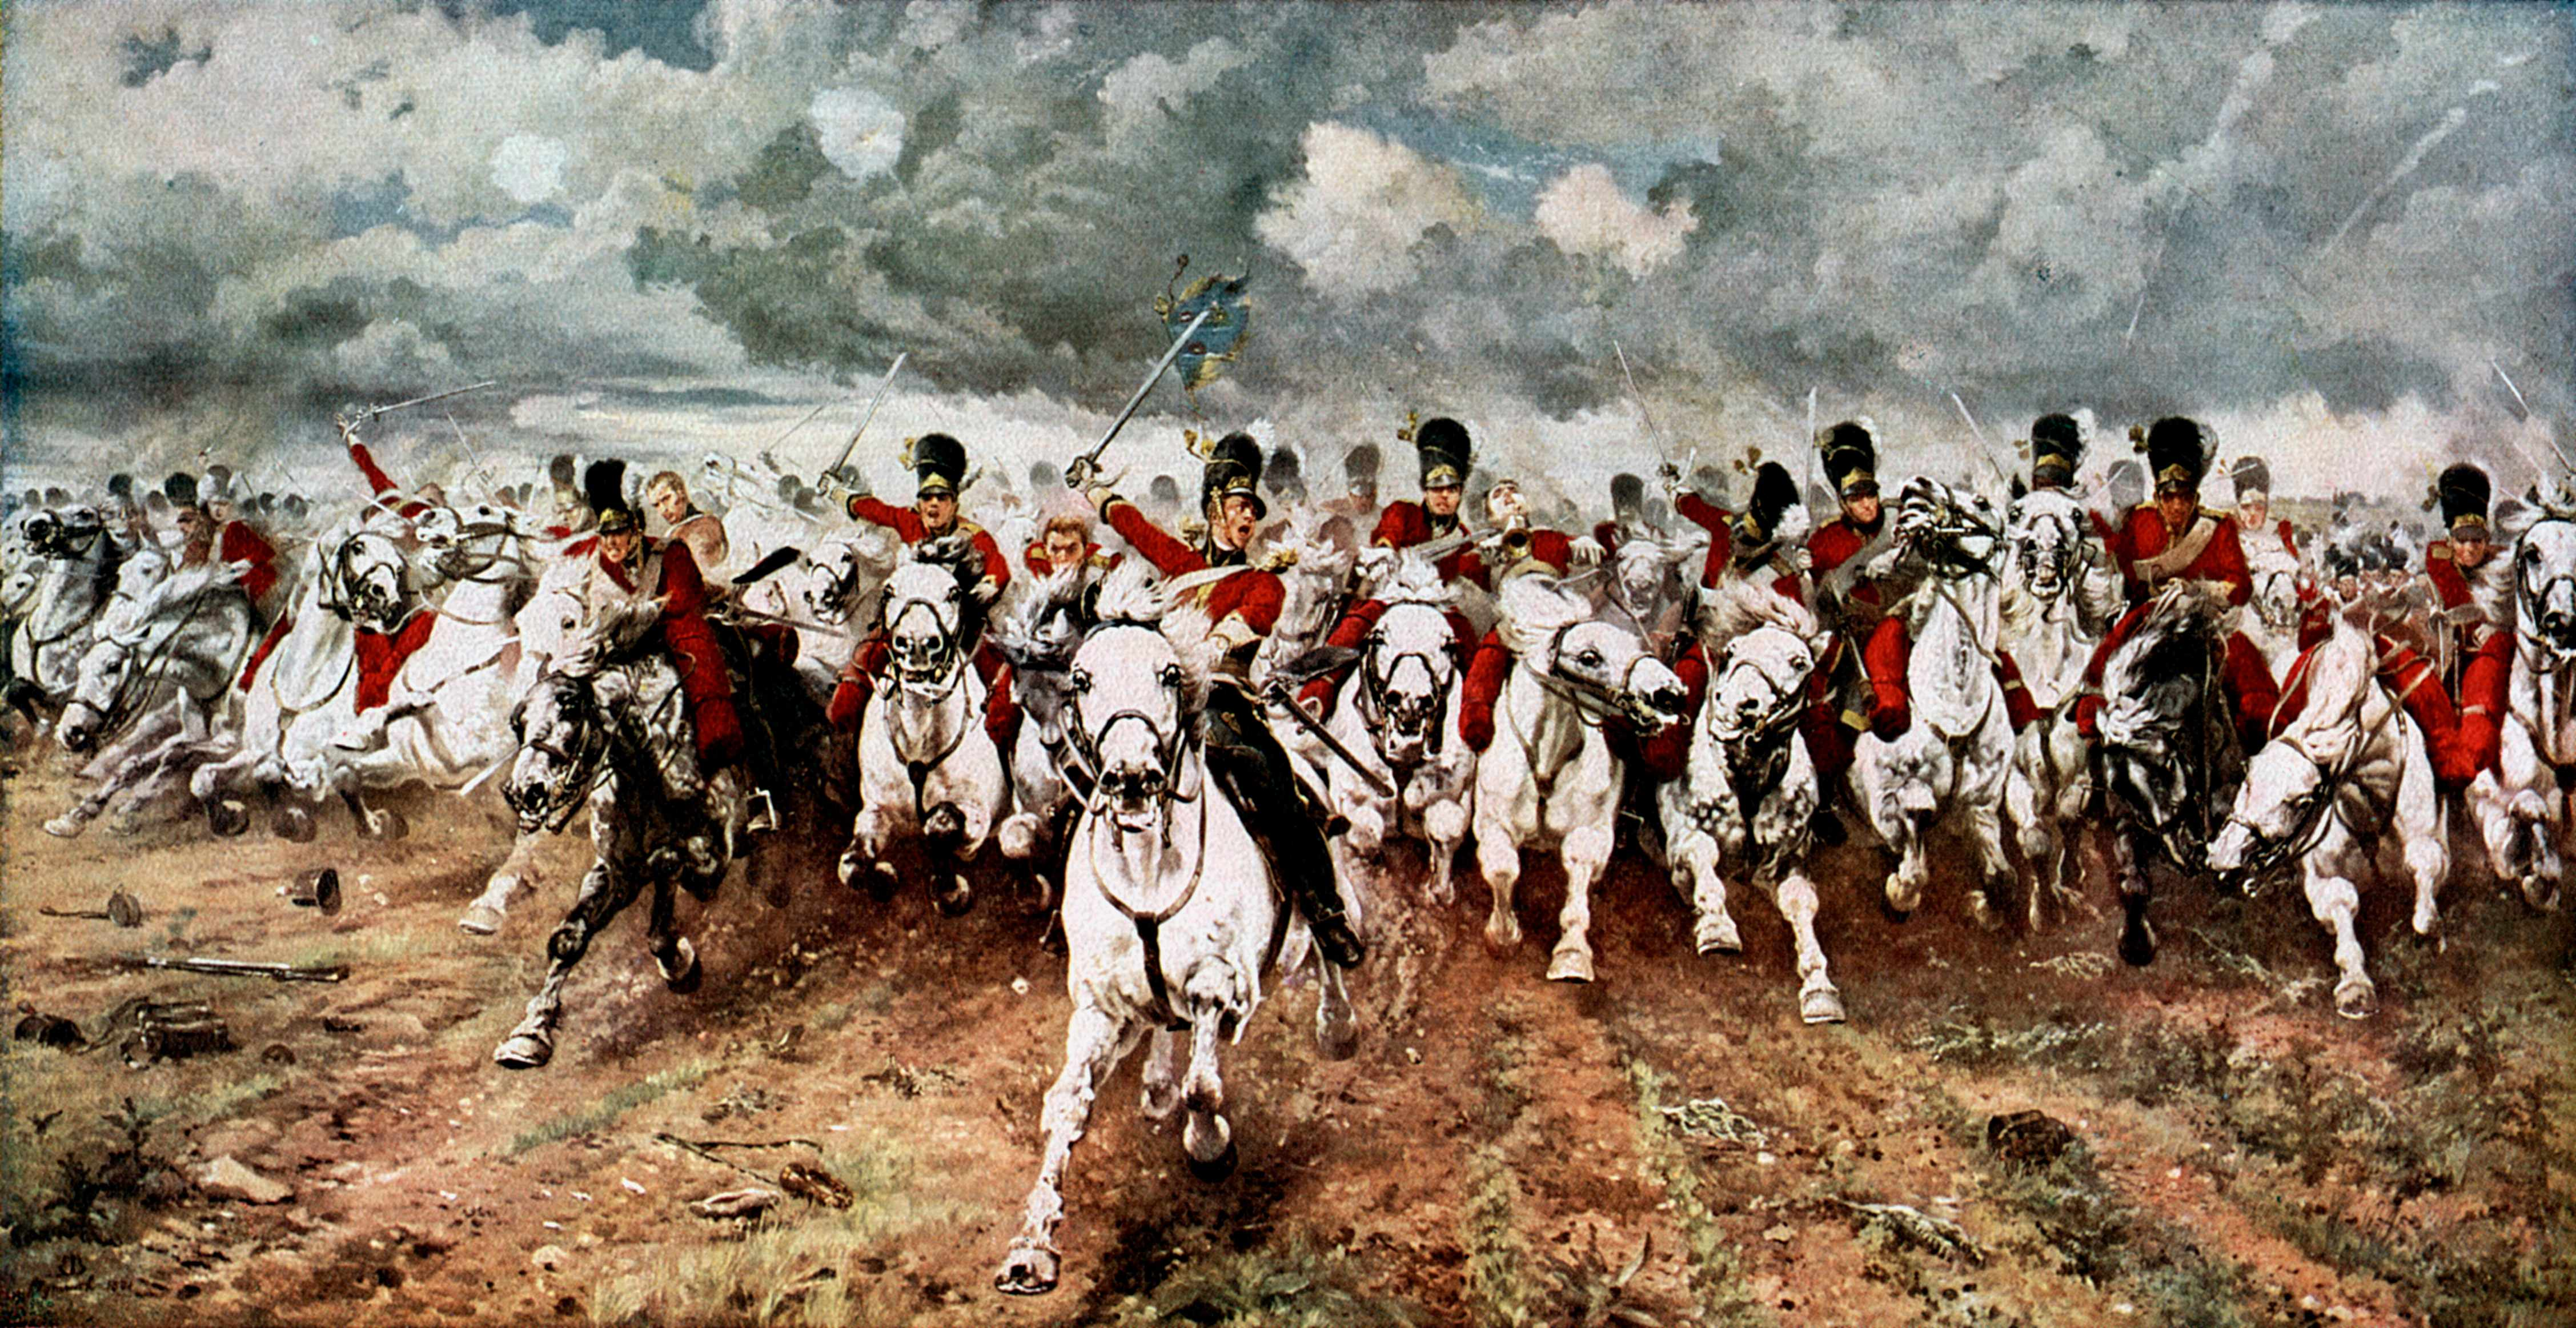 The charge of the Scots Greys at the battle of Waterloo, 18 June 1815, was immortalised in this famous painting of 1881 by Lady Elizabeth Butler (1846-1933). (Ann Ronan Pictures/Print Collector/Getty Images)